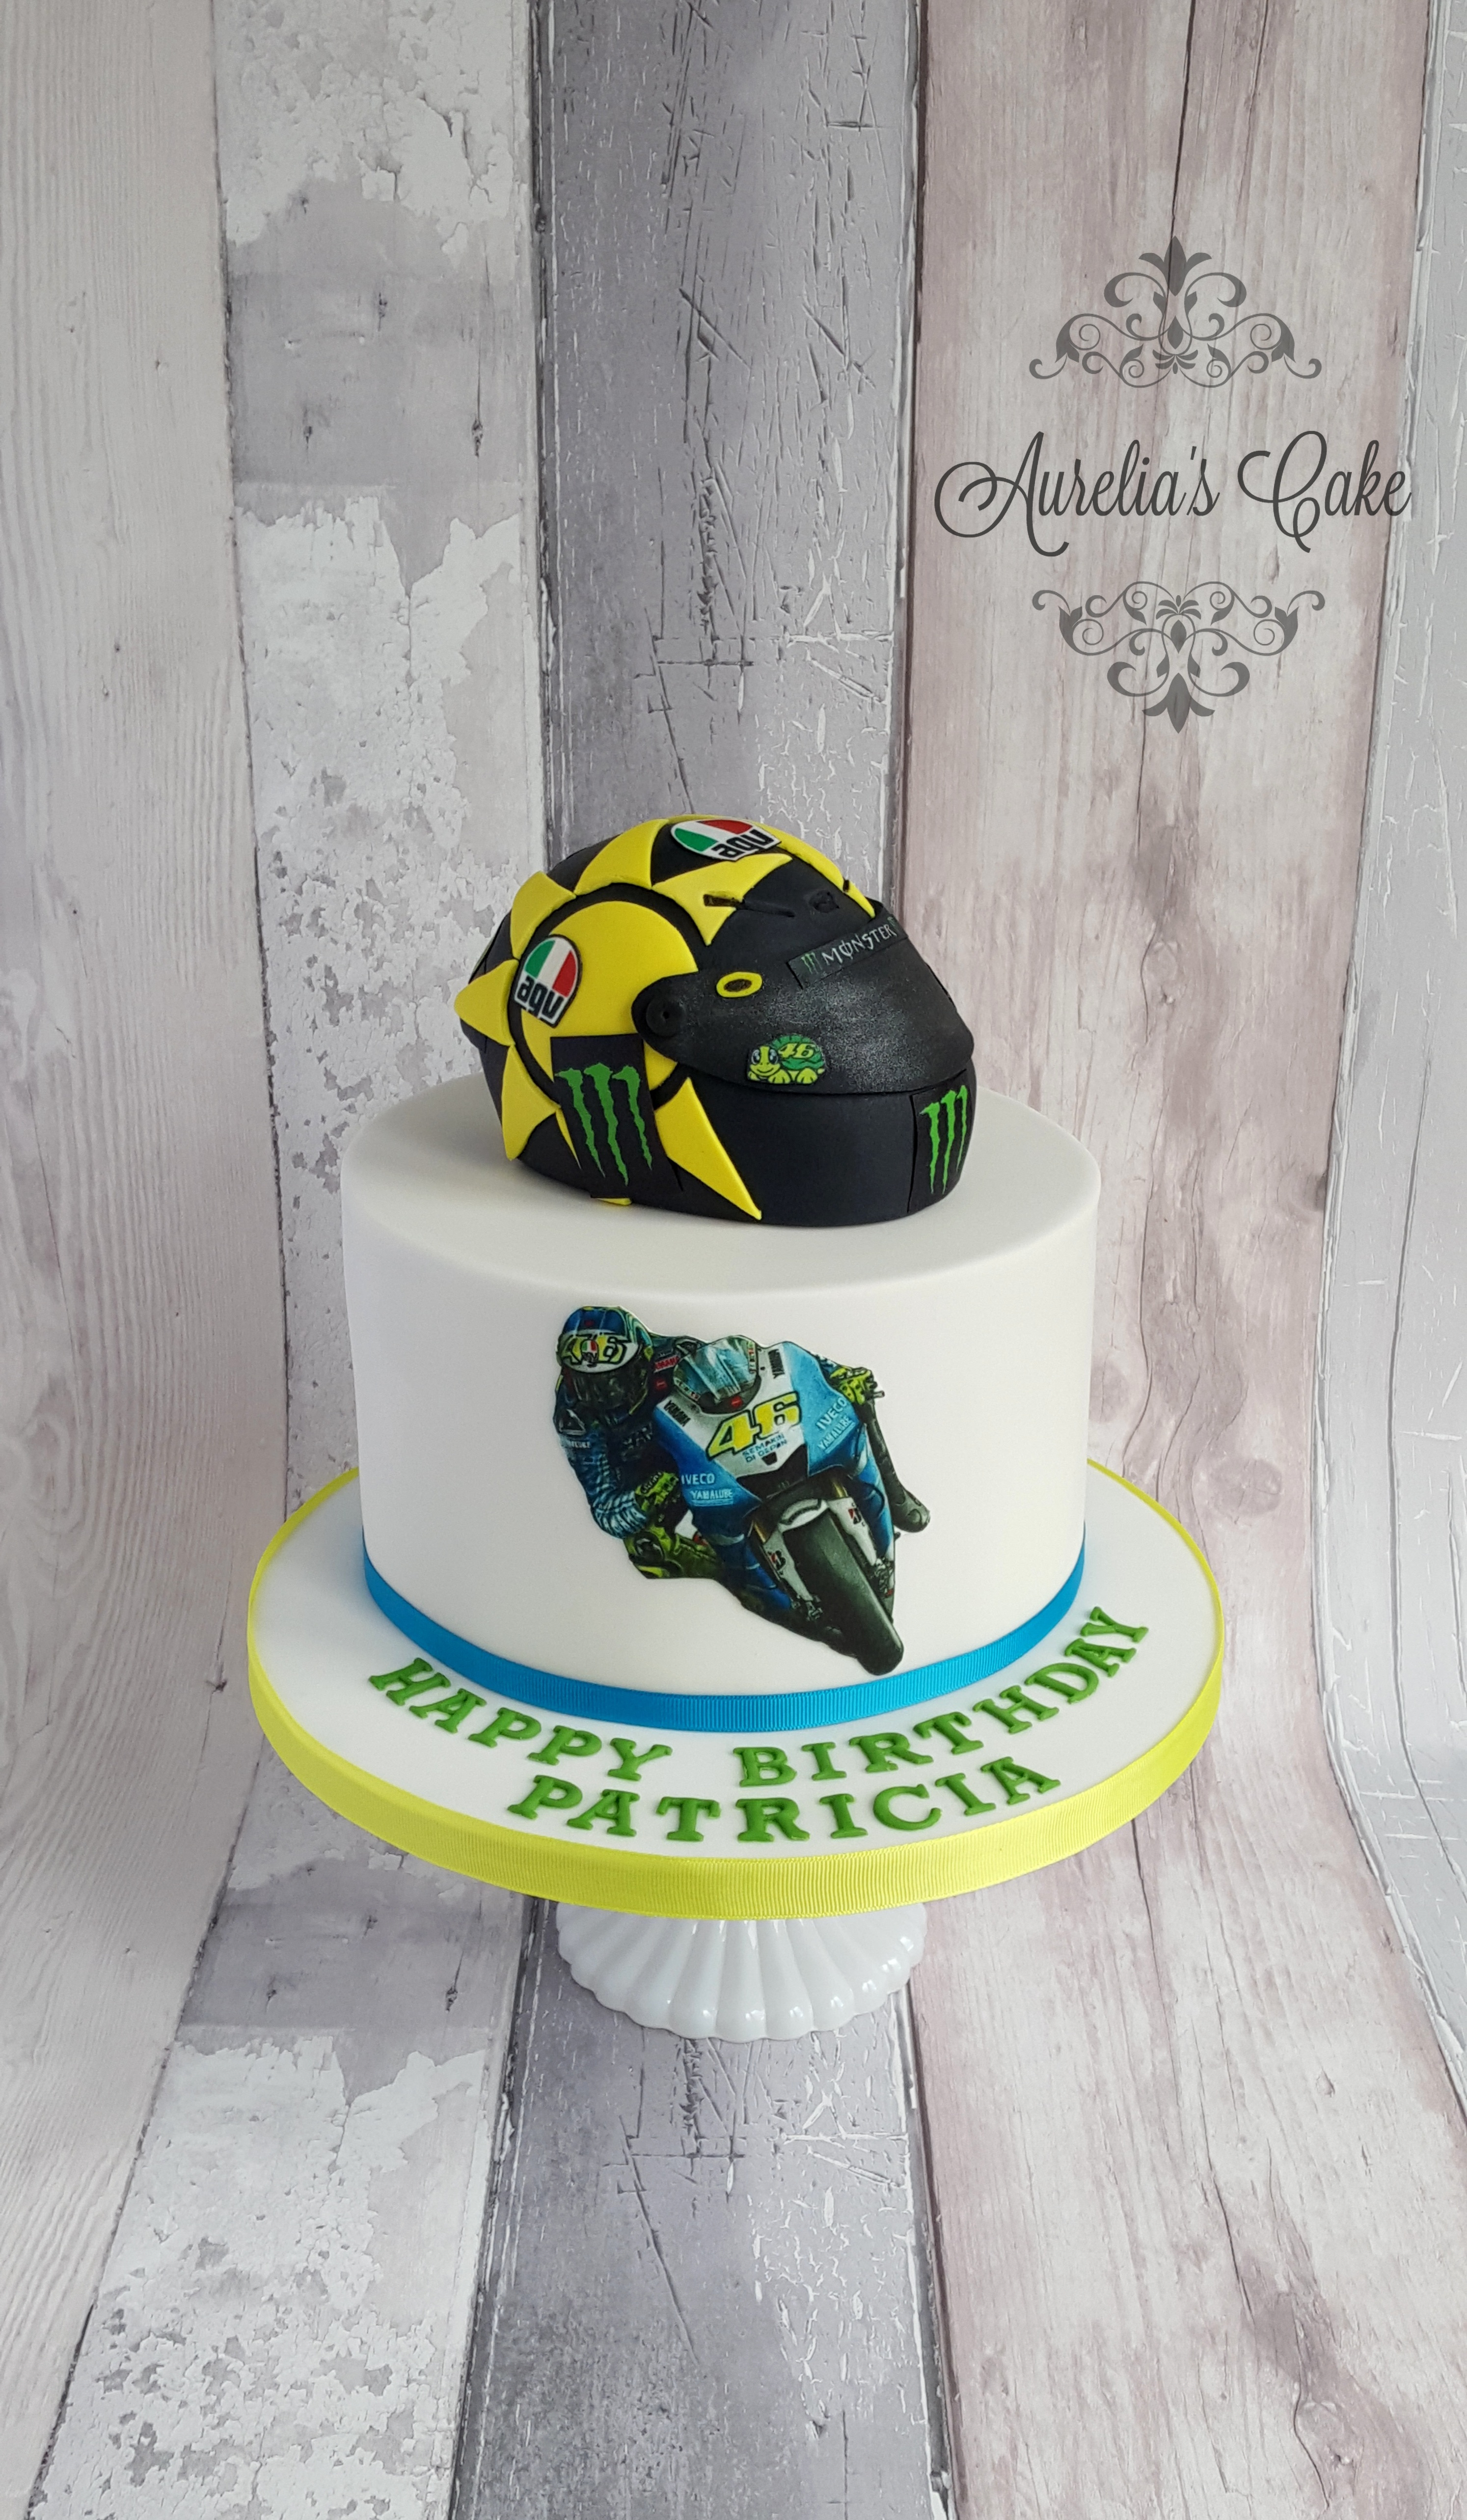 Carlo Rossi themed cake